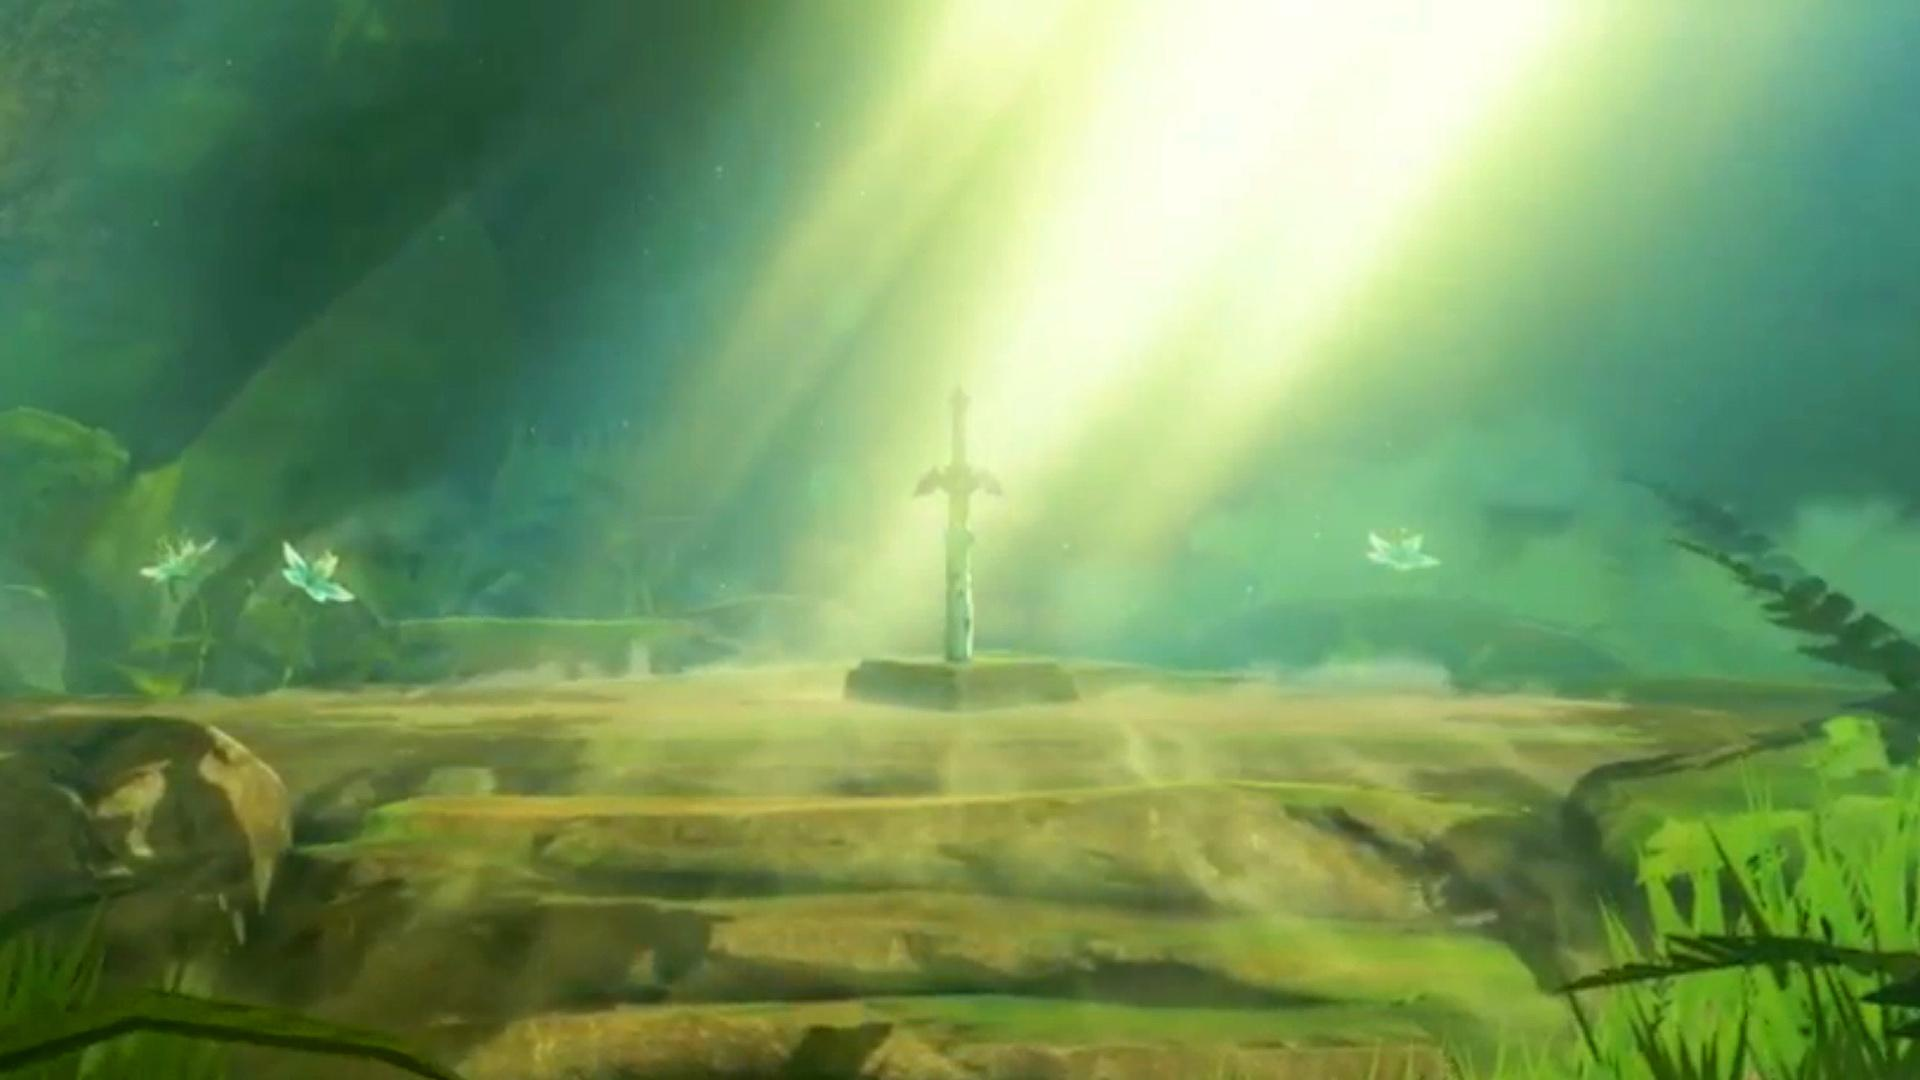 Download Zelda Master Sword Wallpaper Hd Backgrounds